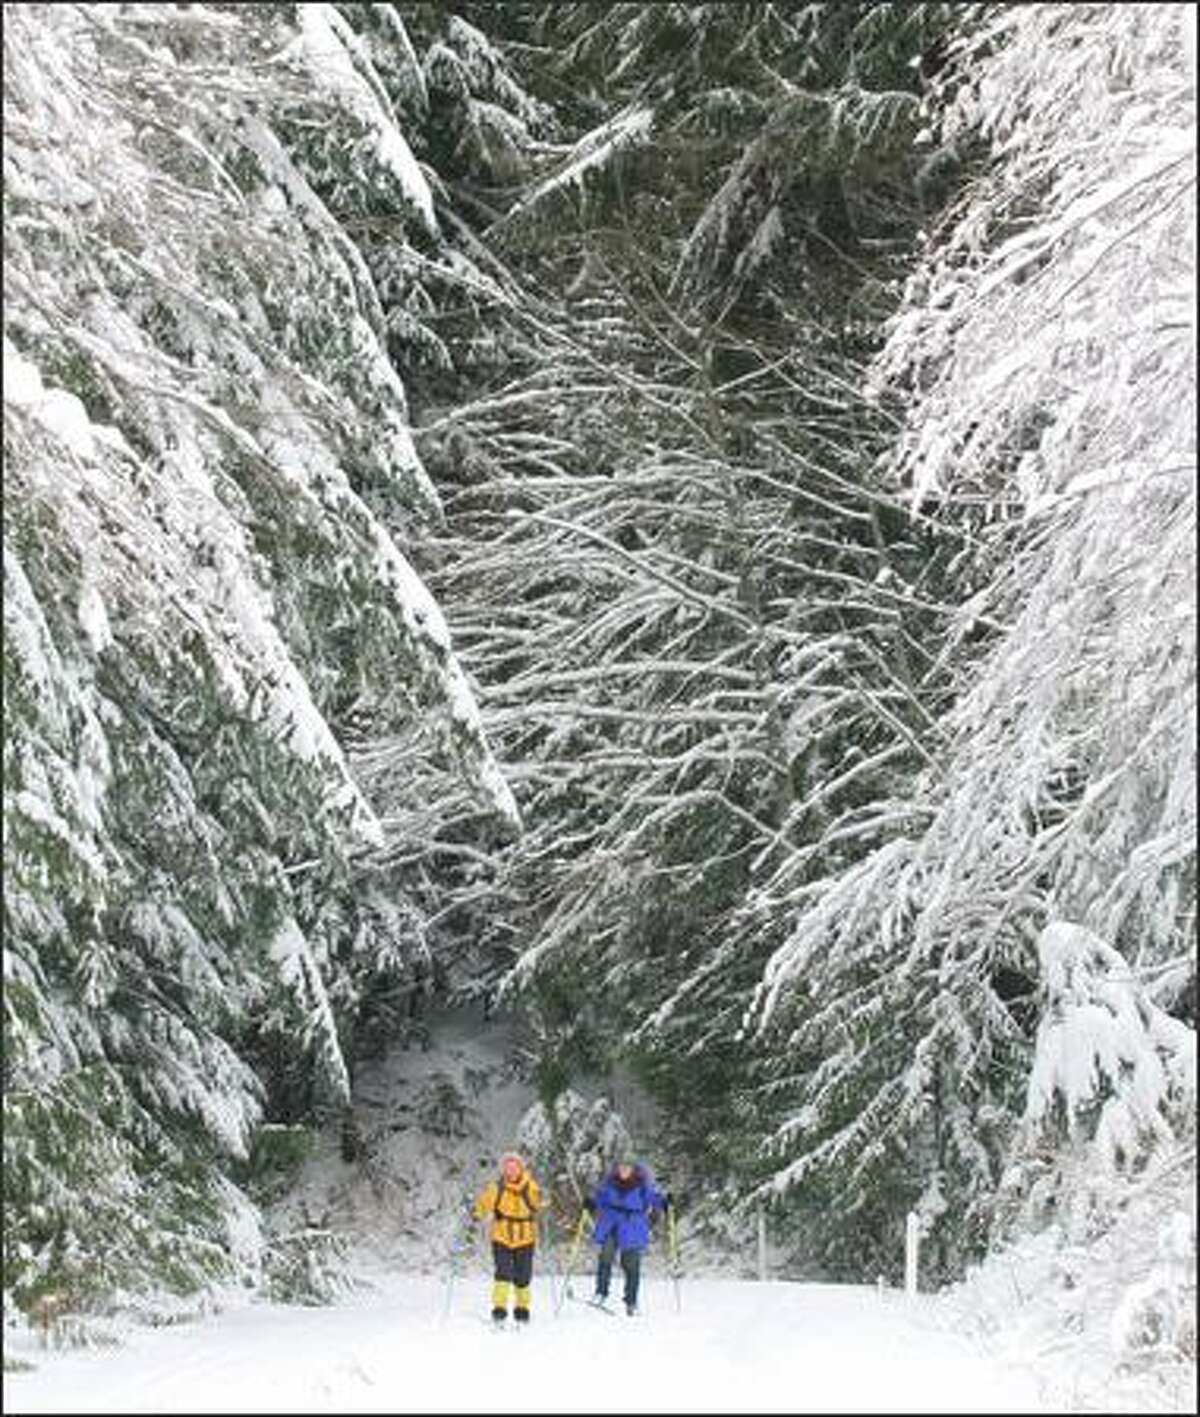 A pair of One World Outing Club members make their way along a dirt road during a cross-country ski and snowshoe trip to Stevens Pass.